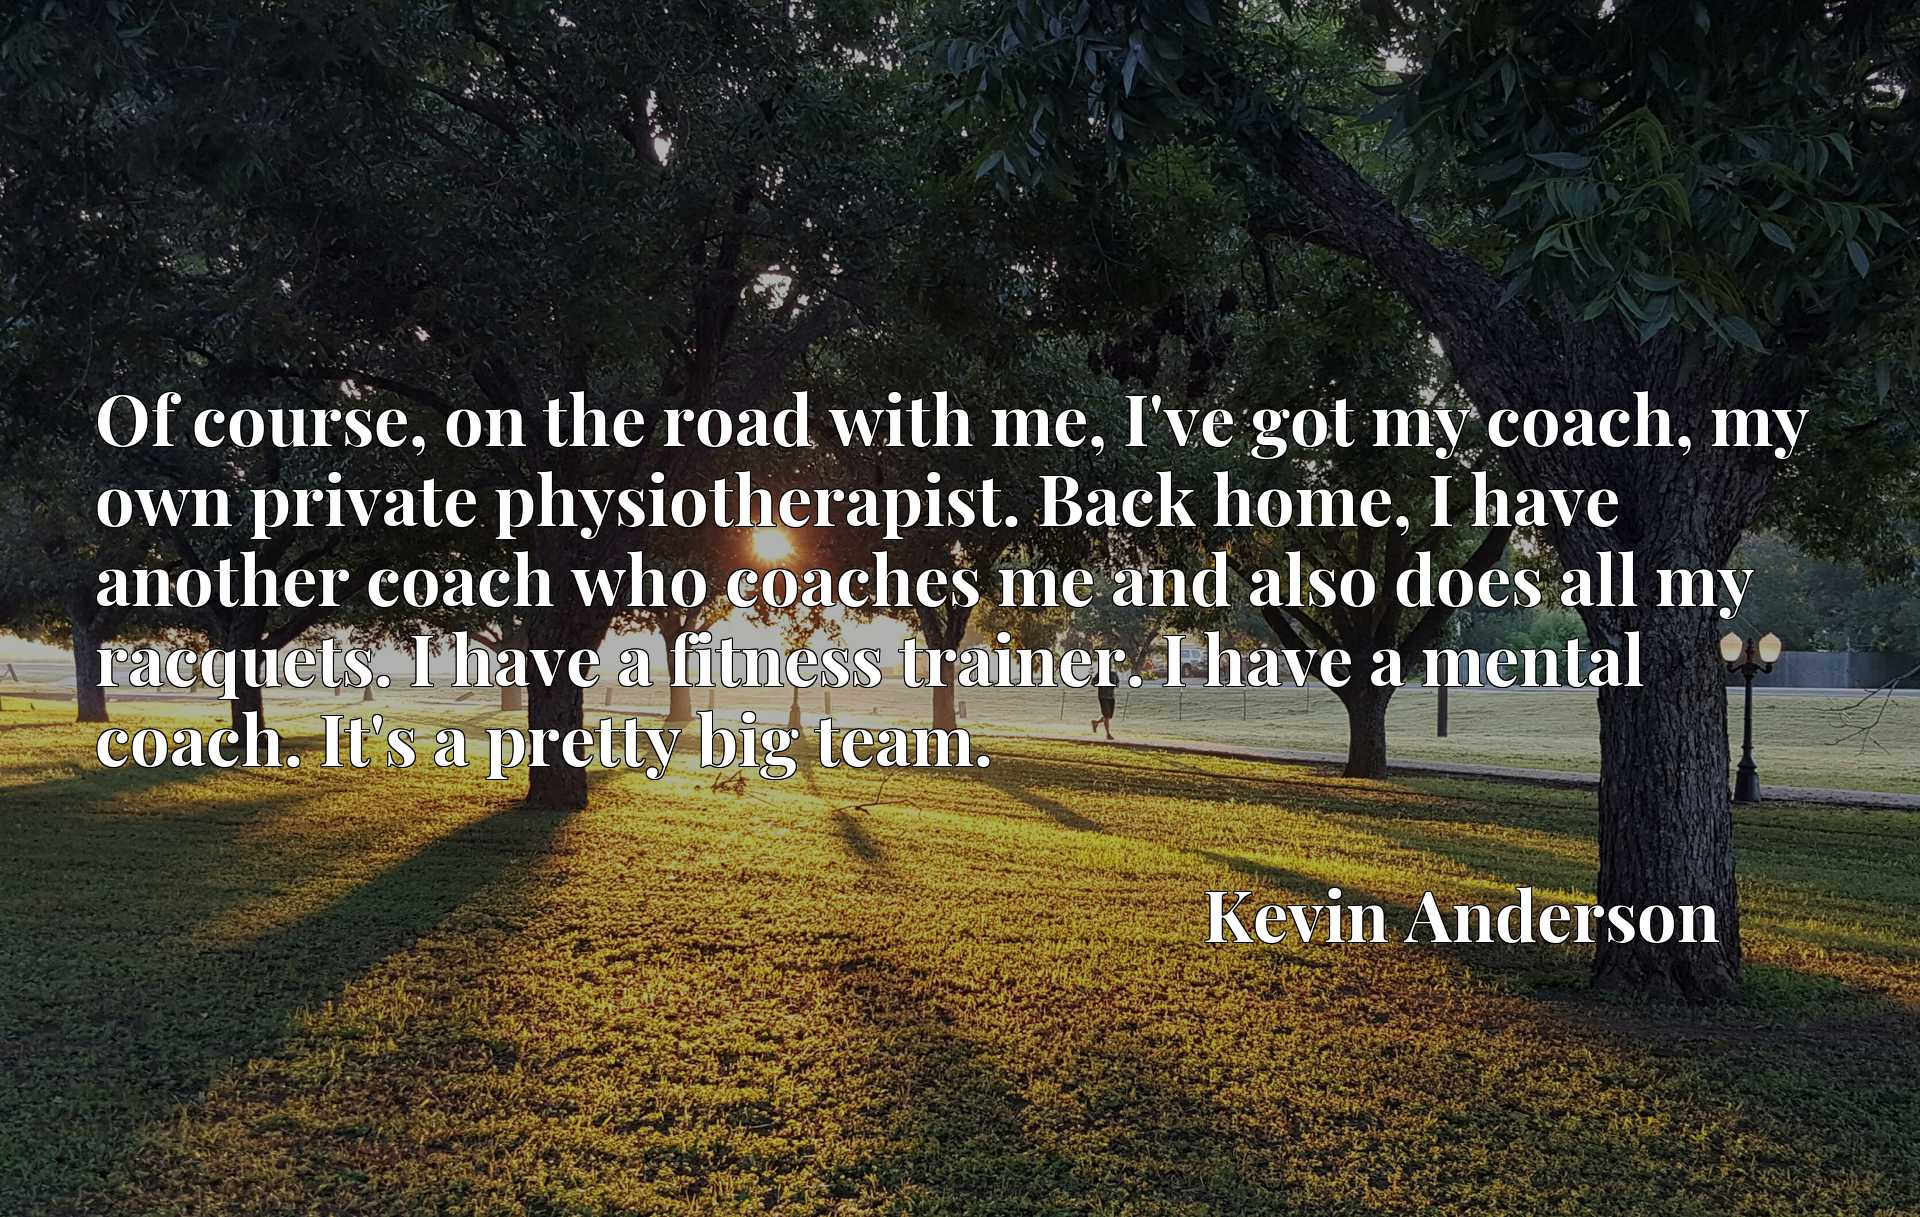 Of course, on the road with me, I've got my coach, my own private physiotherapist. Back home, I have another coach who coaches me and also does all my racquets. I have a fitness trainer. I have a mental coach. It's a pretty big team.